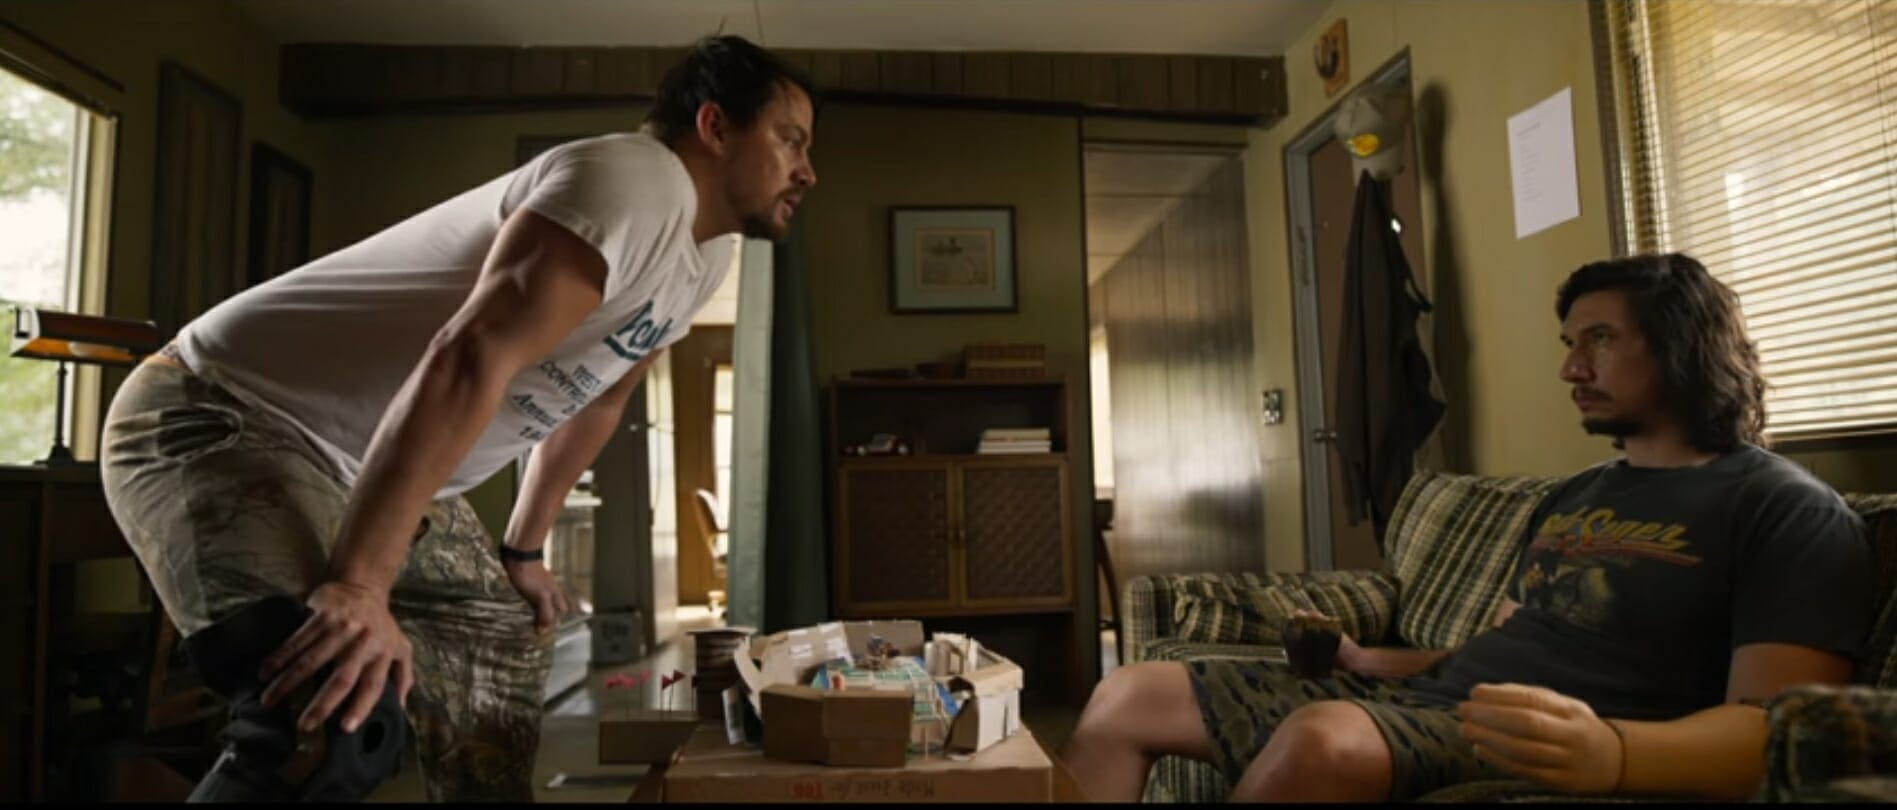 best comedy movies on amazon prime - logan lucky